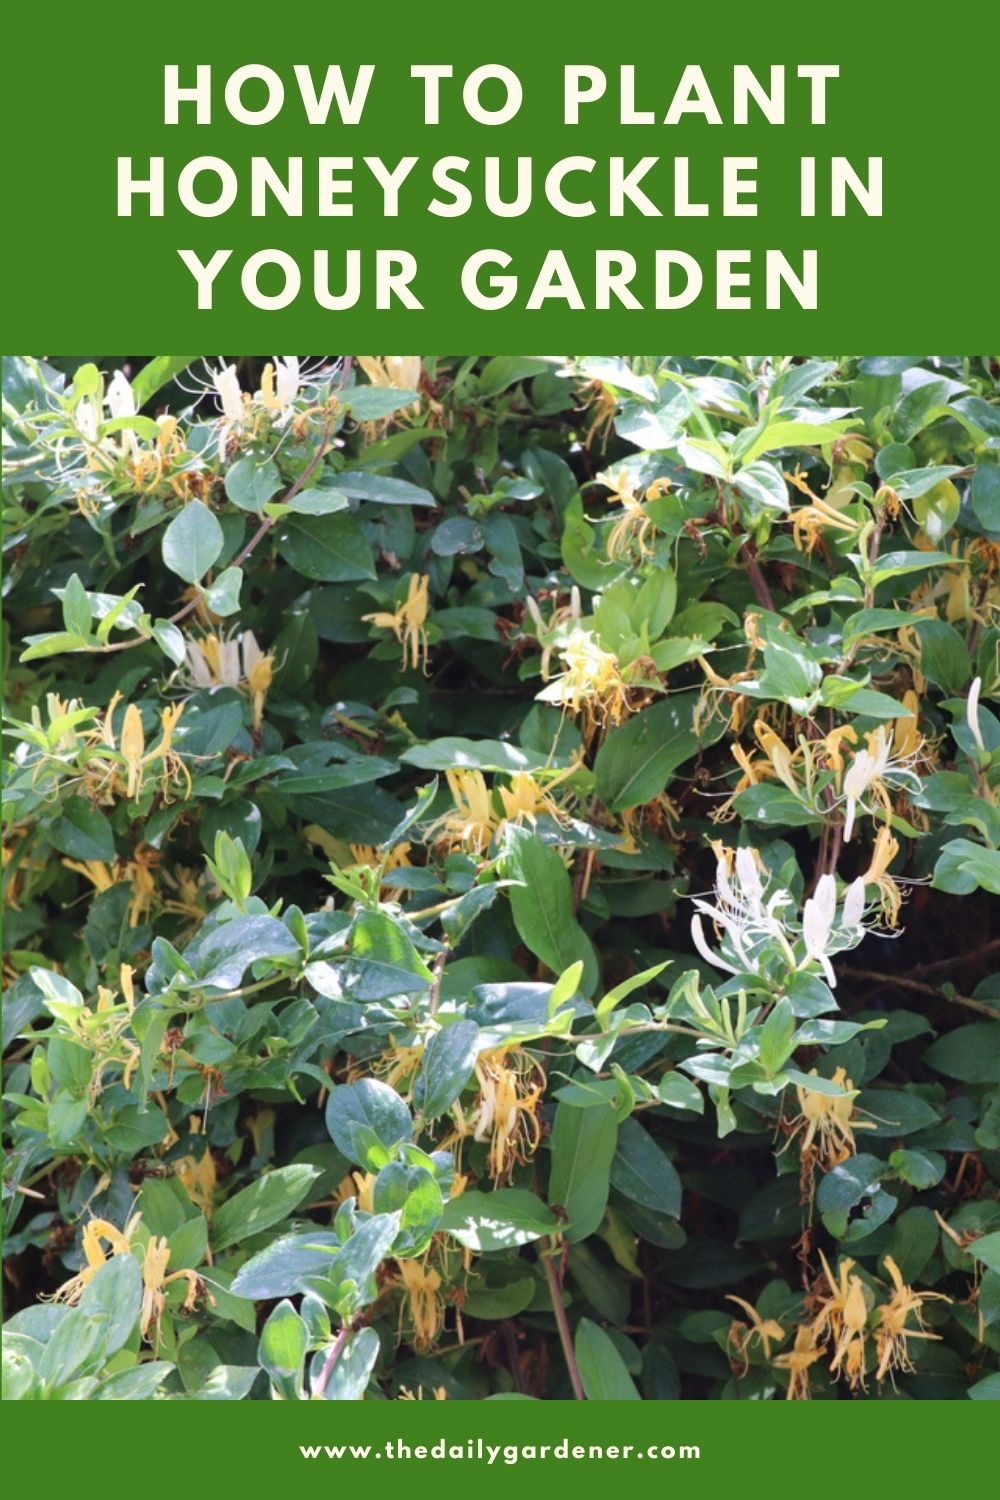 How to Plant Honeysuckle in Your Garden (Tricks to Care!) 2